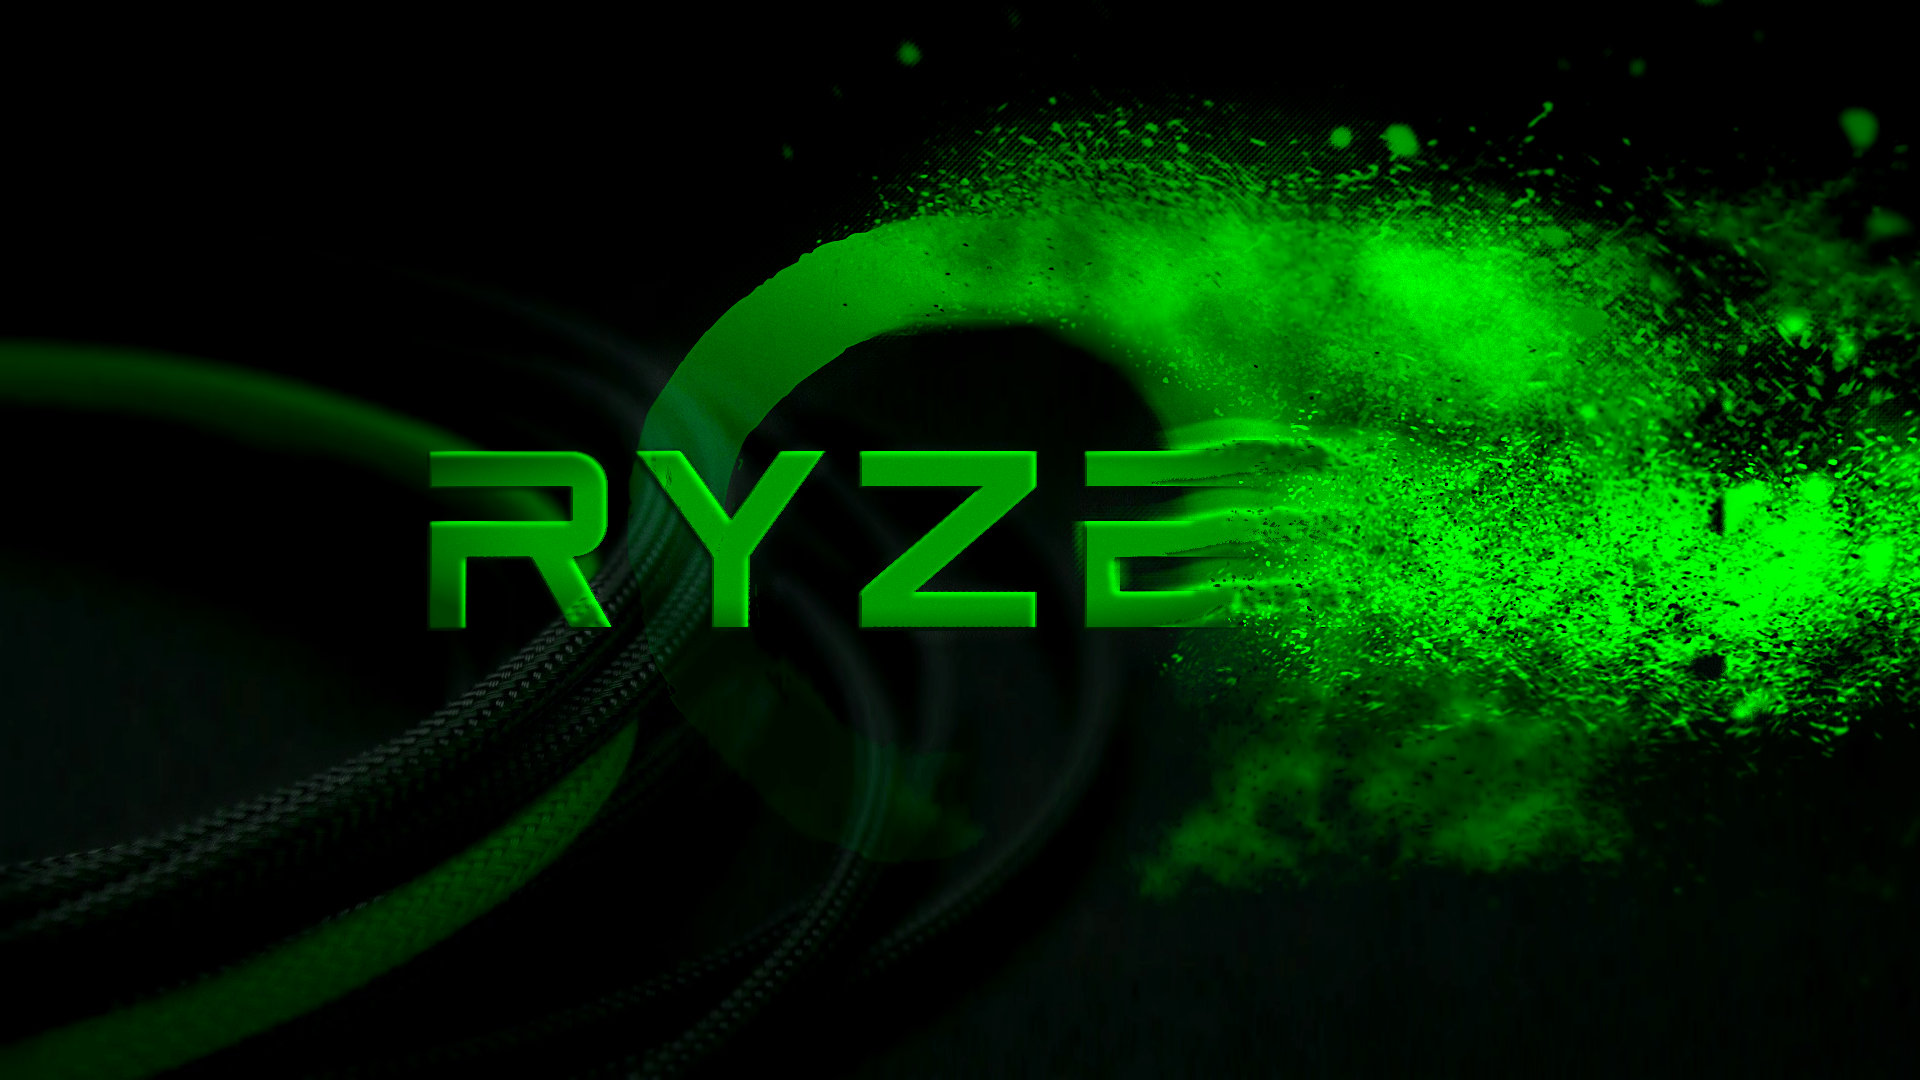 Amd Wallpaper Ryzen Fitrini S Wallpaper